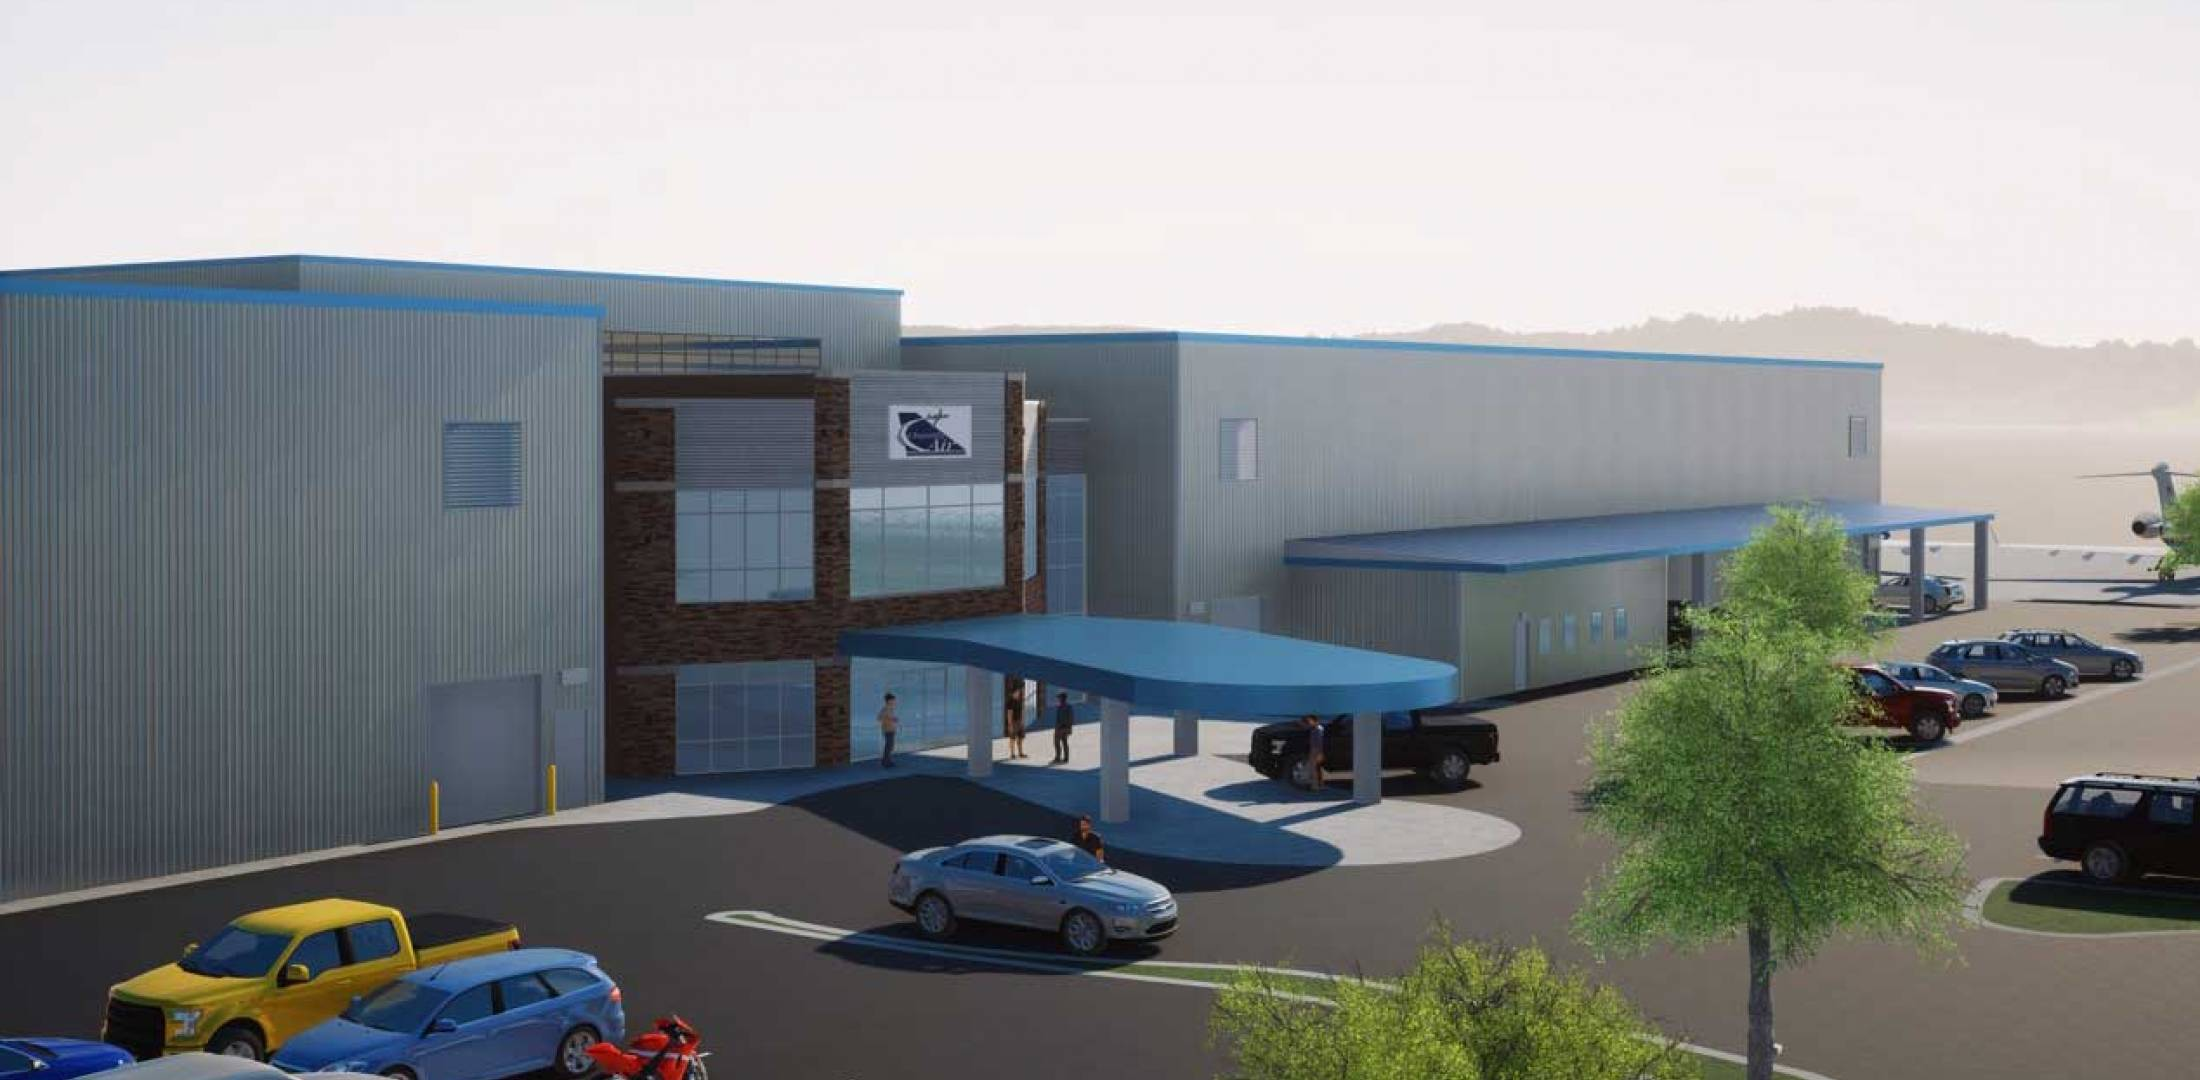 Artist rendering of planned Chantilly Air FBO at HEF